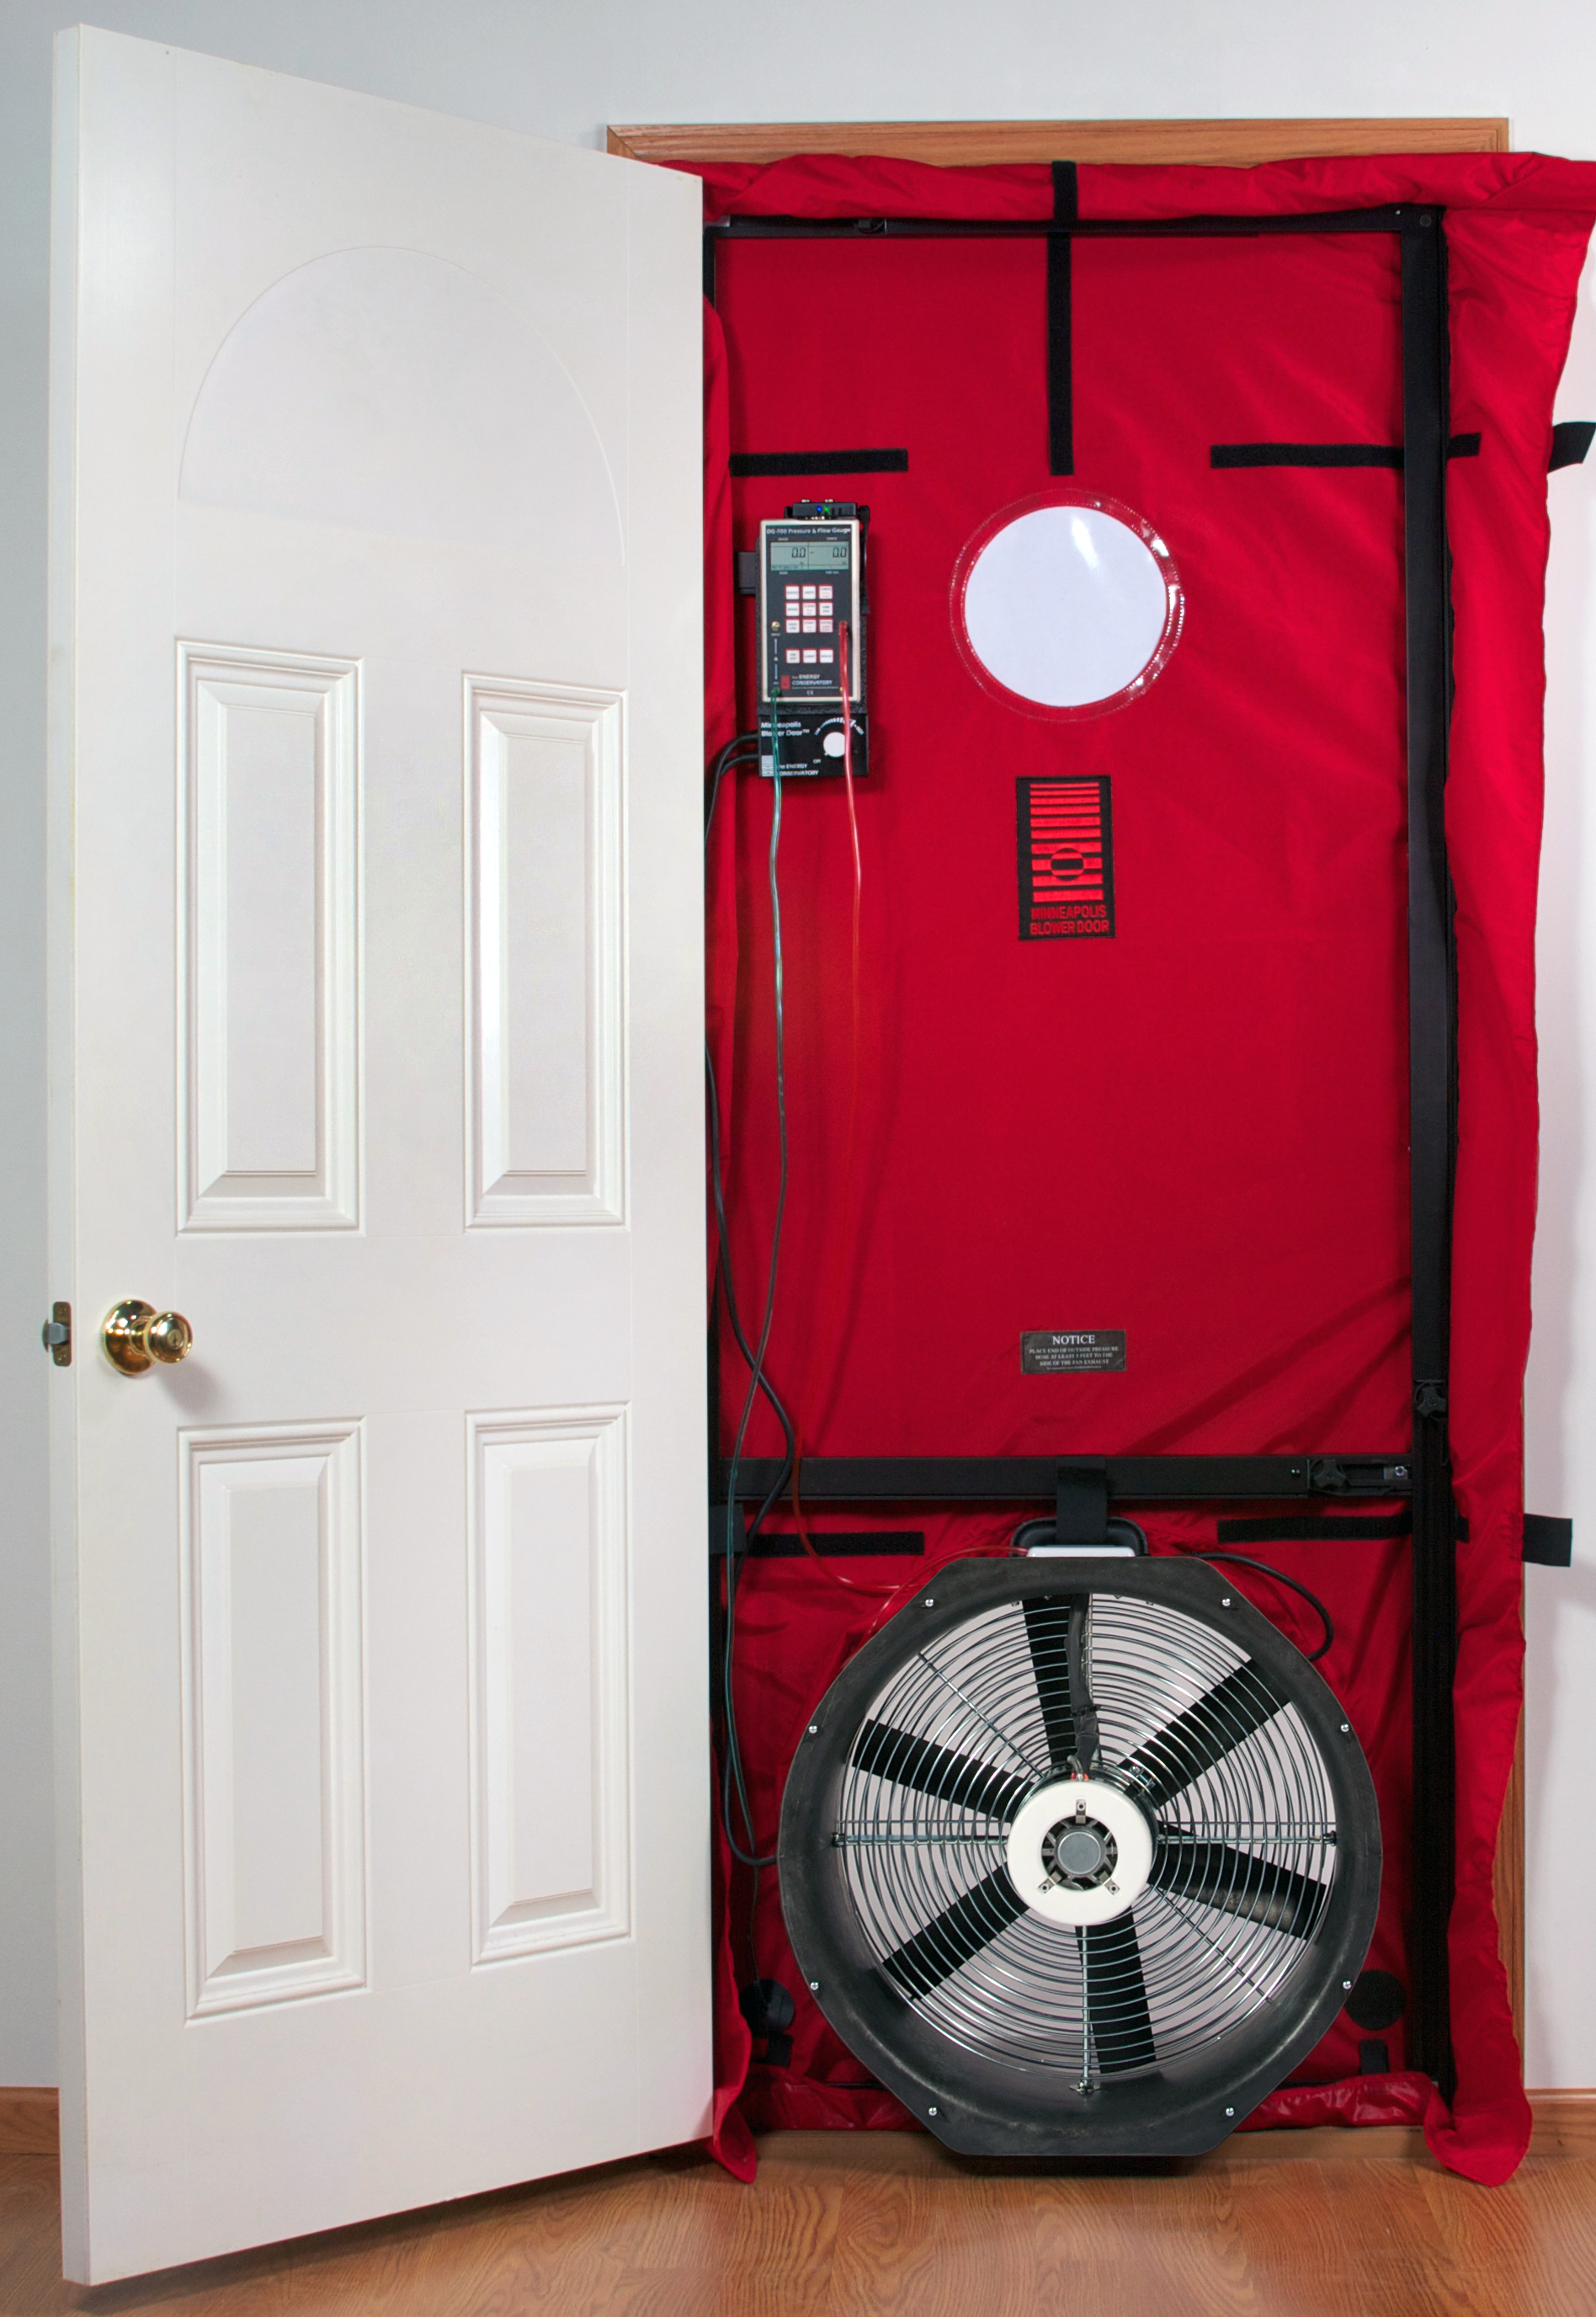 blower doors blower door test photo 1. Black Bedroom Furniture Sets. Home Design Ideas